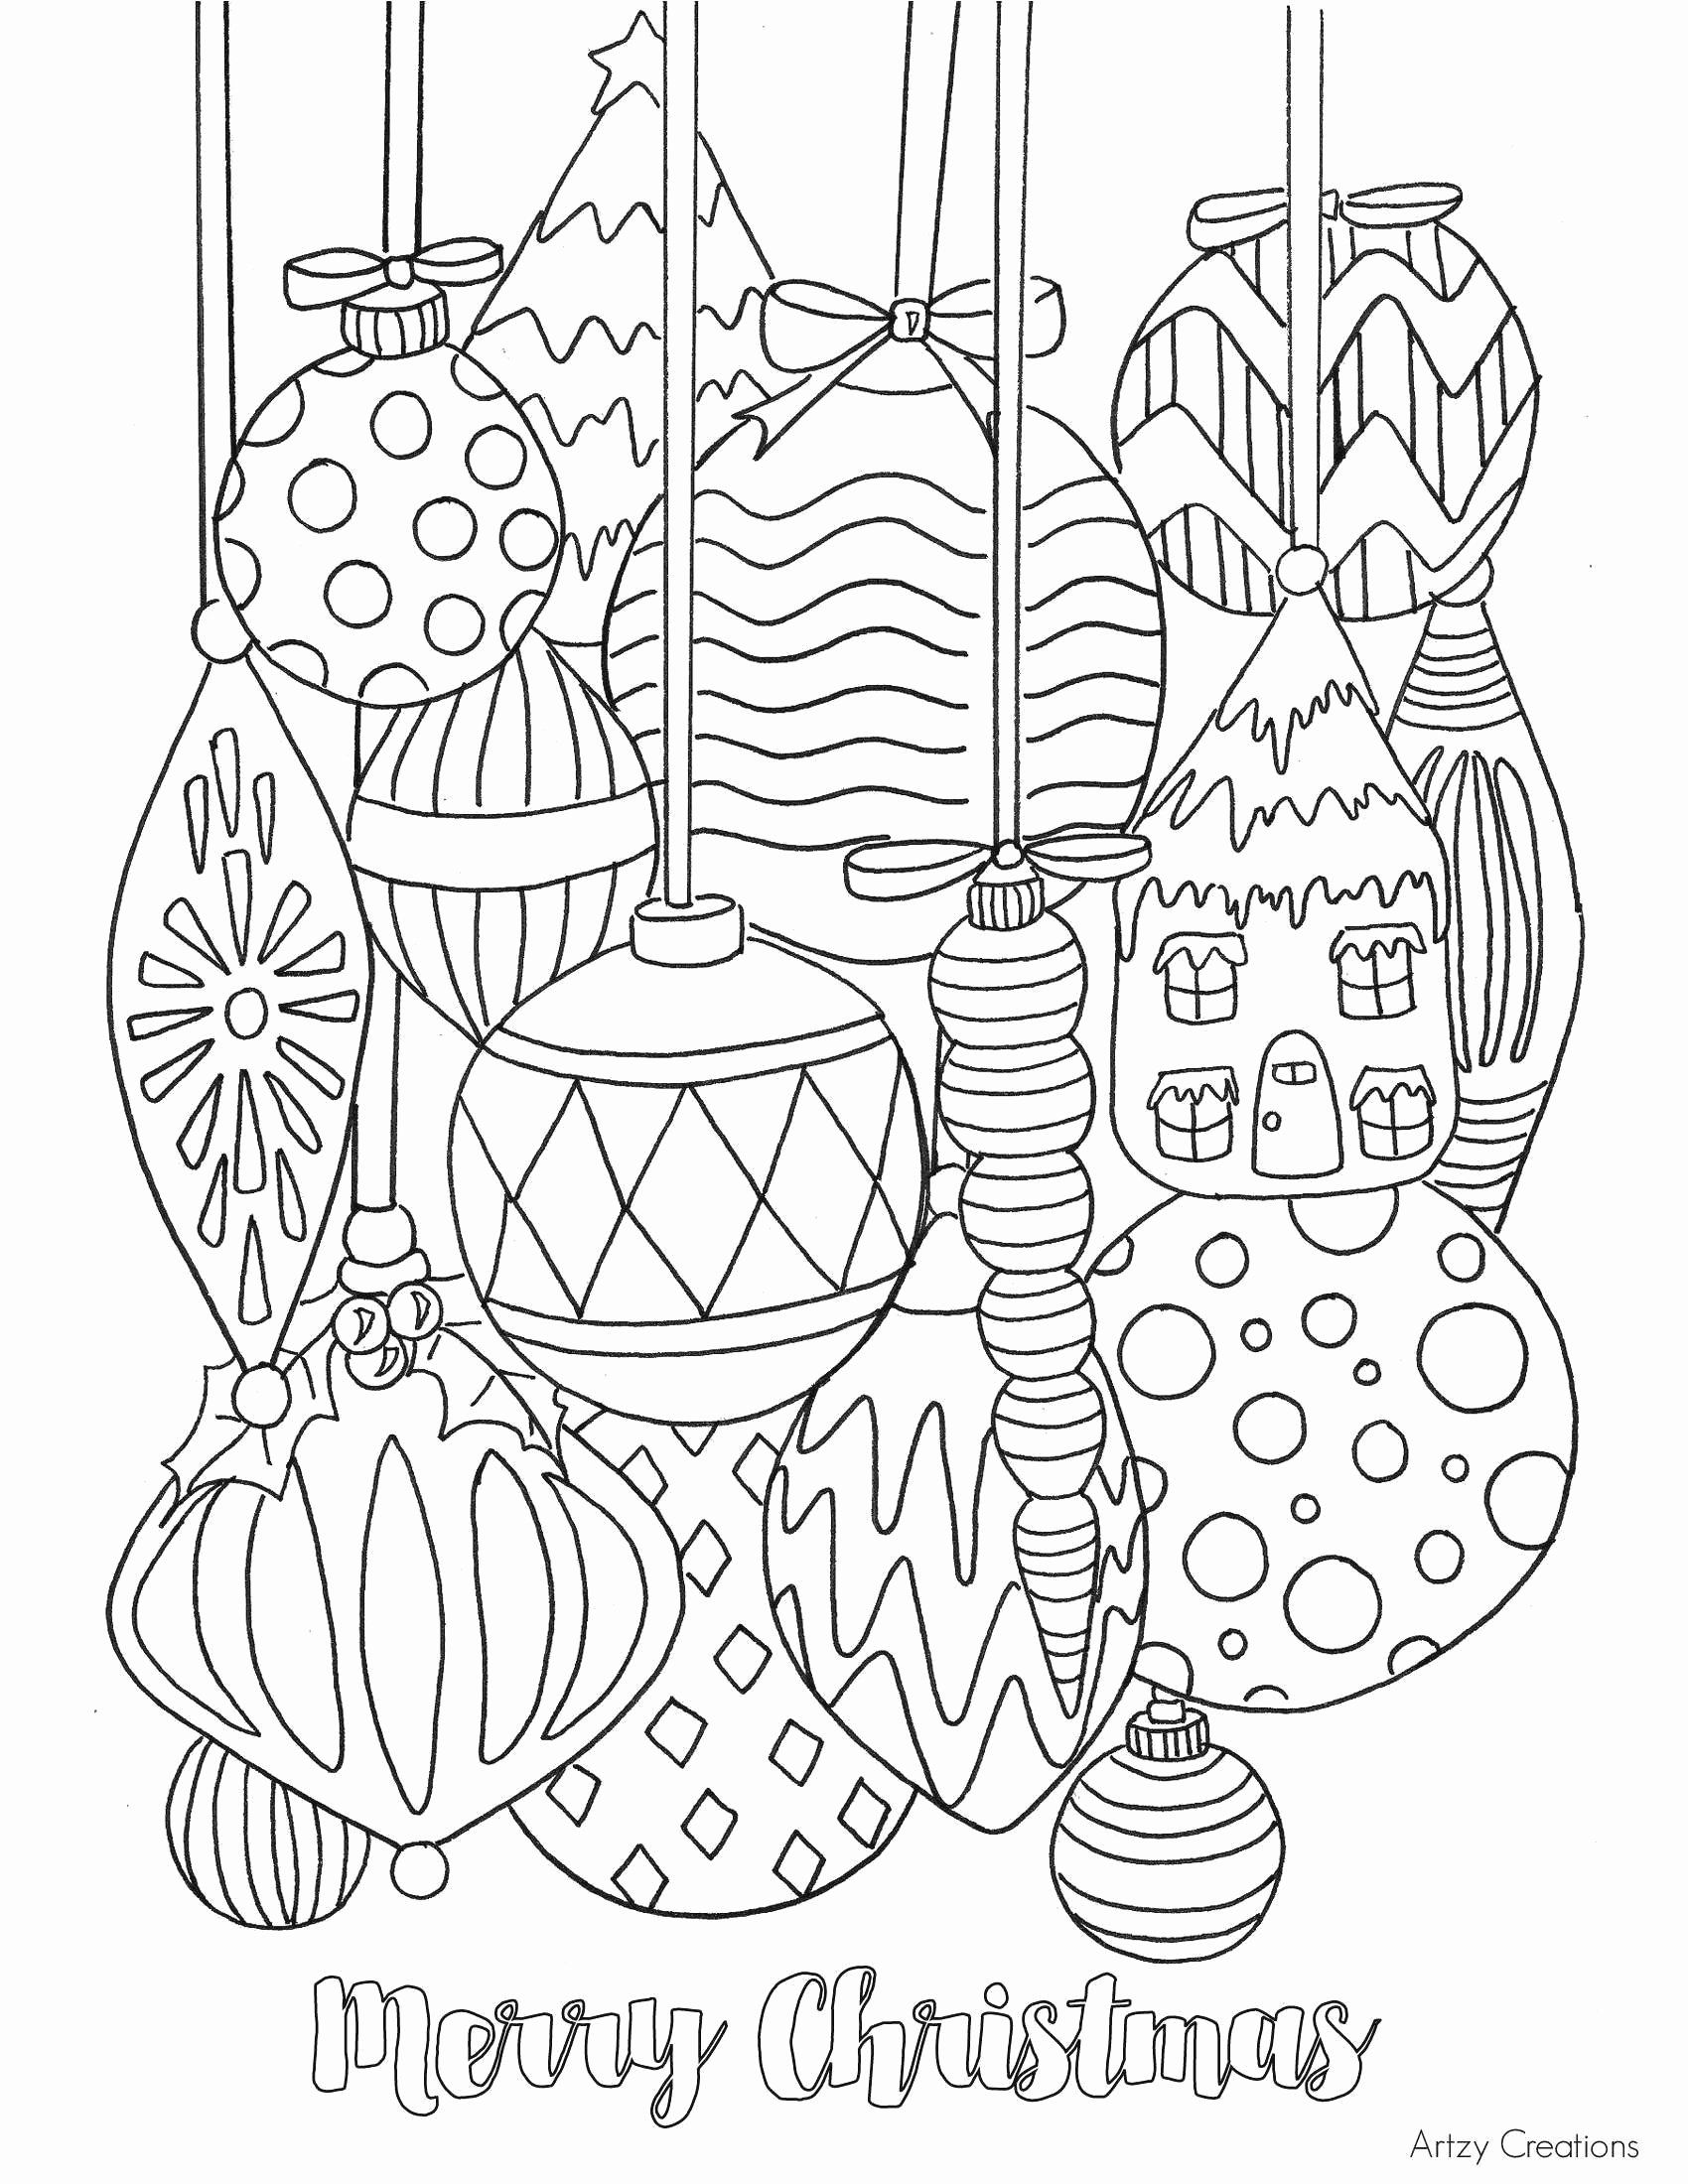 Tree Mandala Coloring Pages Beautiful Lovely Christmas Mandalas Coloring Pages Nocn Kerstmis Kleuren Kerstkleurplaten Kerstmis Kleurplaten